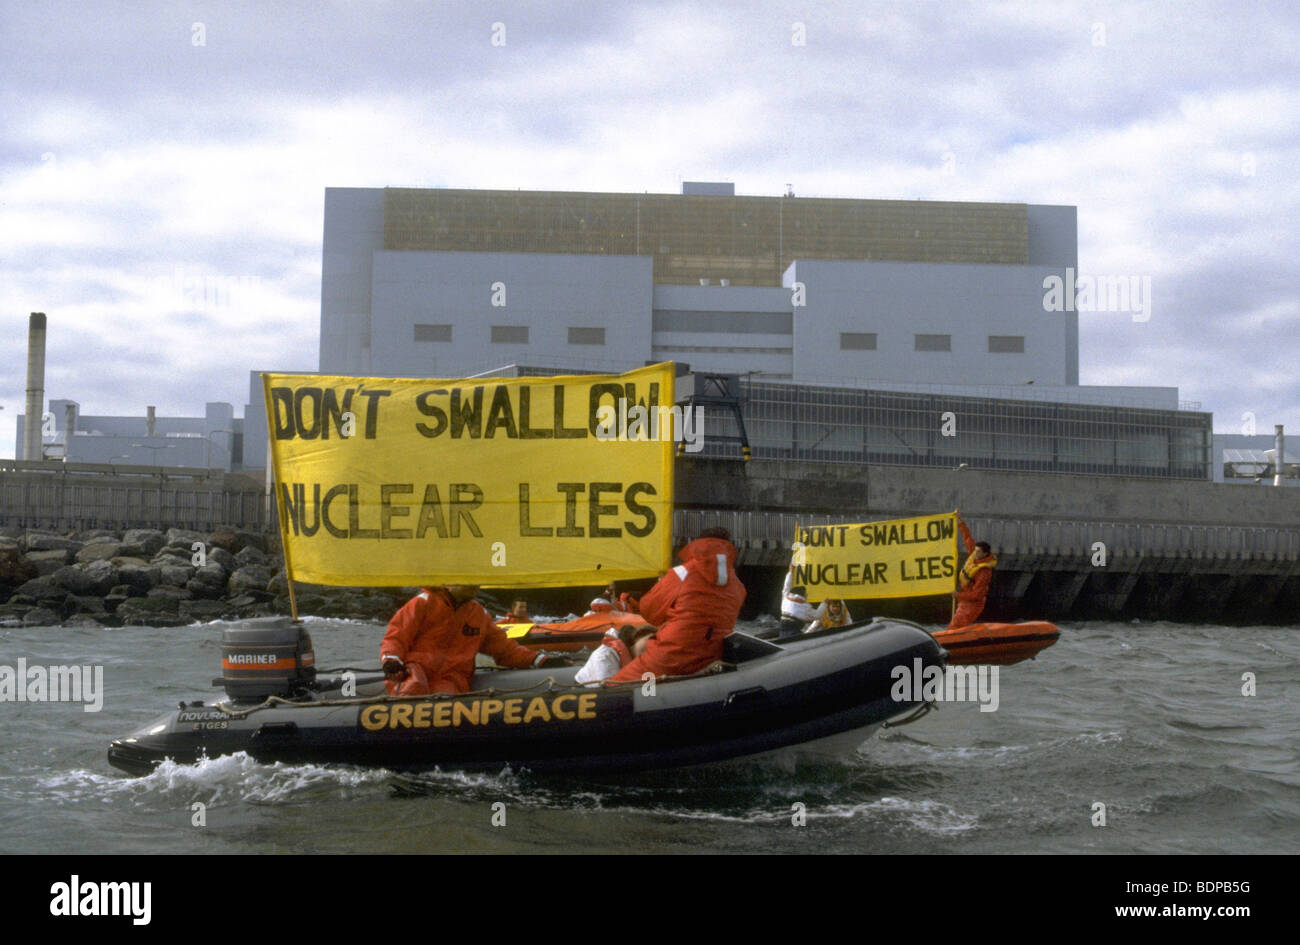 Greenpeace action  against the dangers of Nuclear power generation at the Torness nuclear facility in Scotland - Stock Image